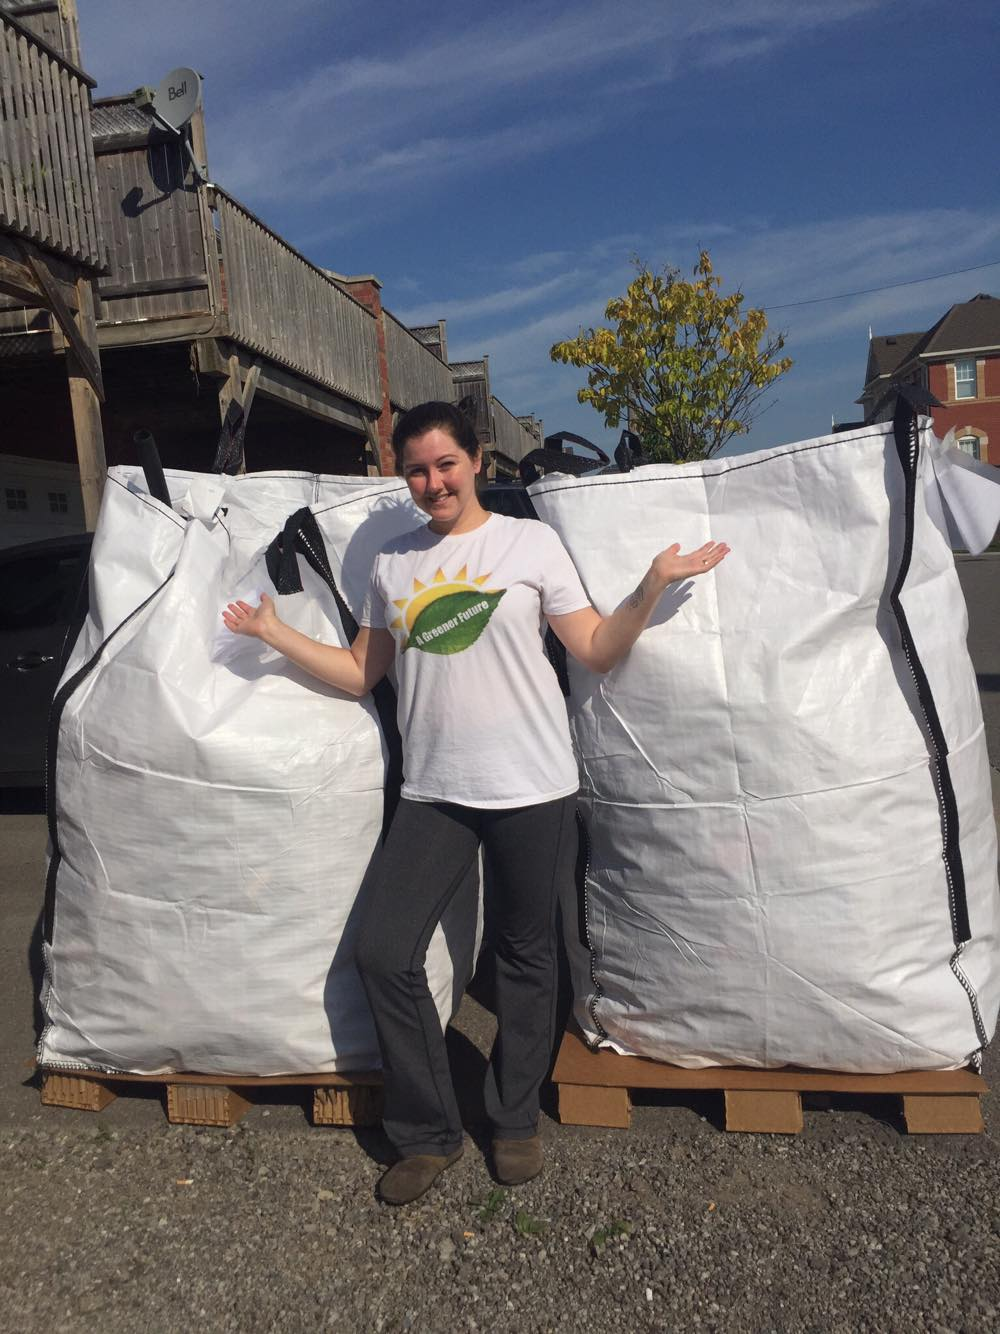 Rochelle Byrne, A Greener Future's Executive Director,with two super-sacks full of beach plastic from Love Your Lake 2017.